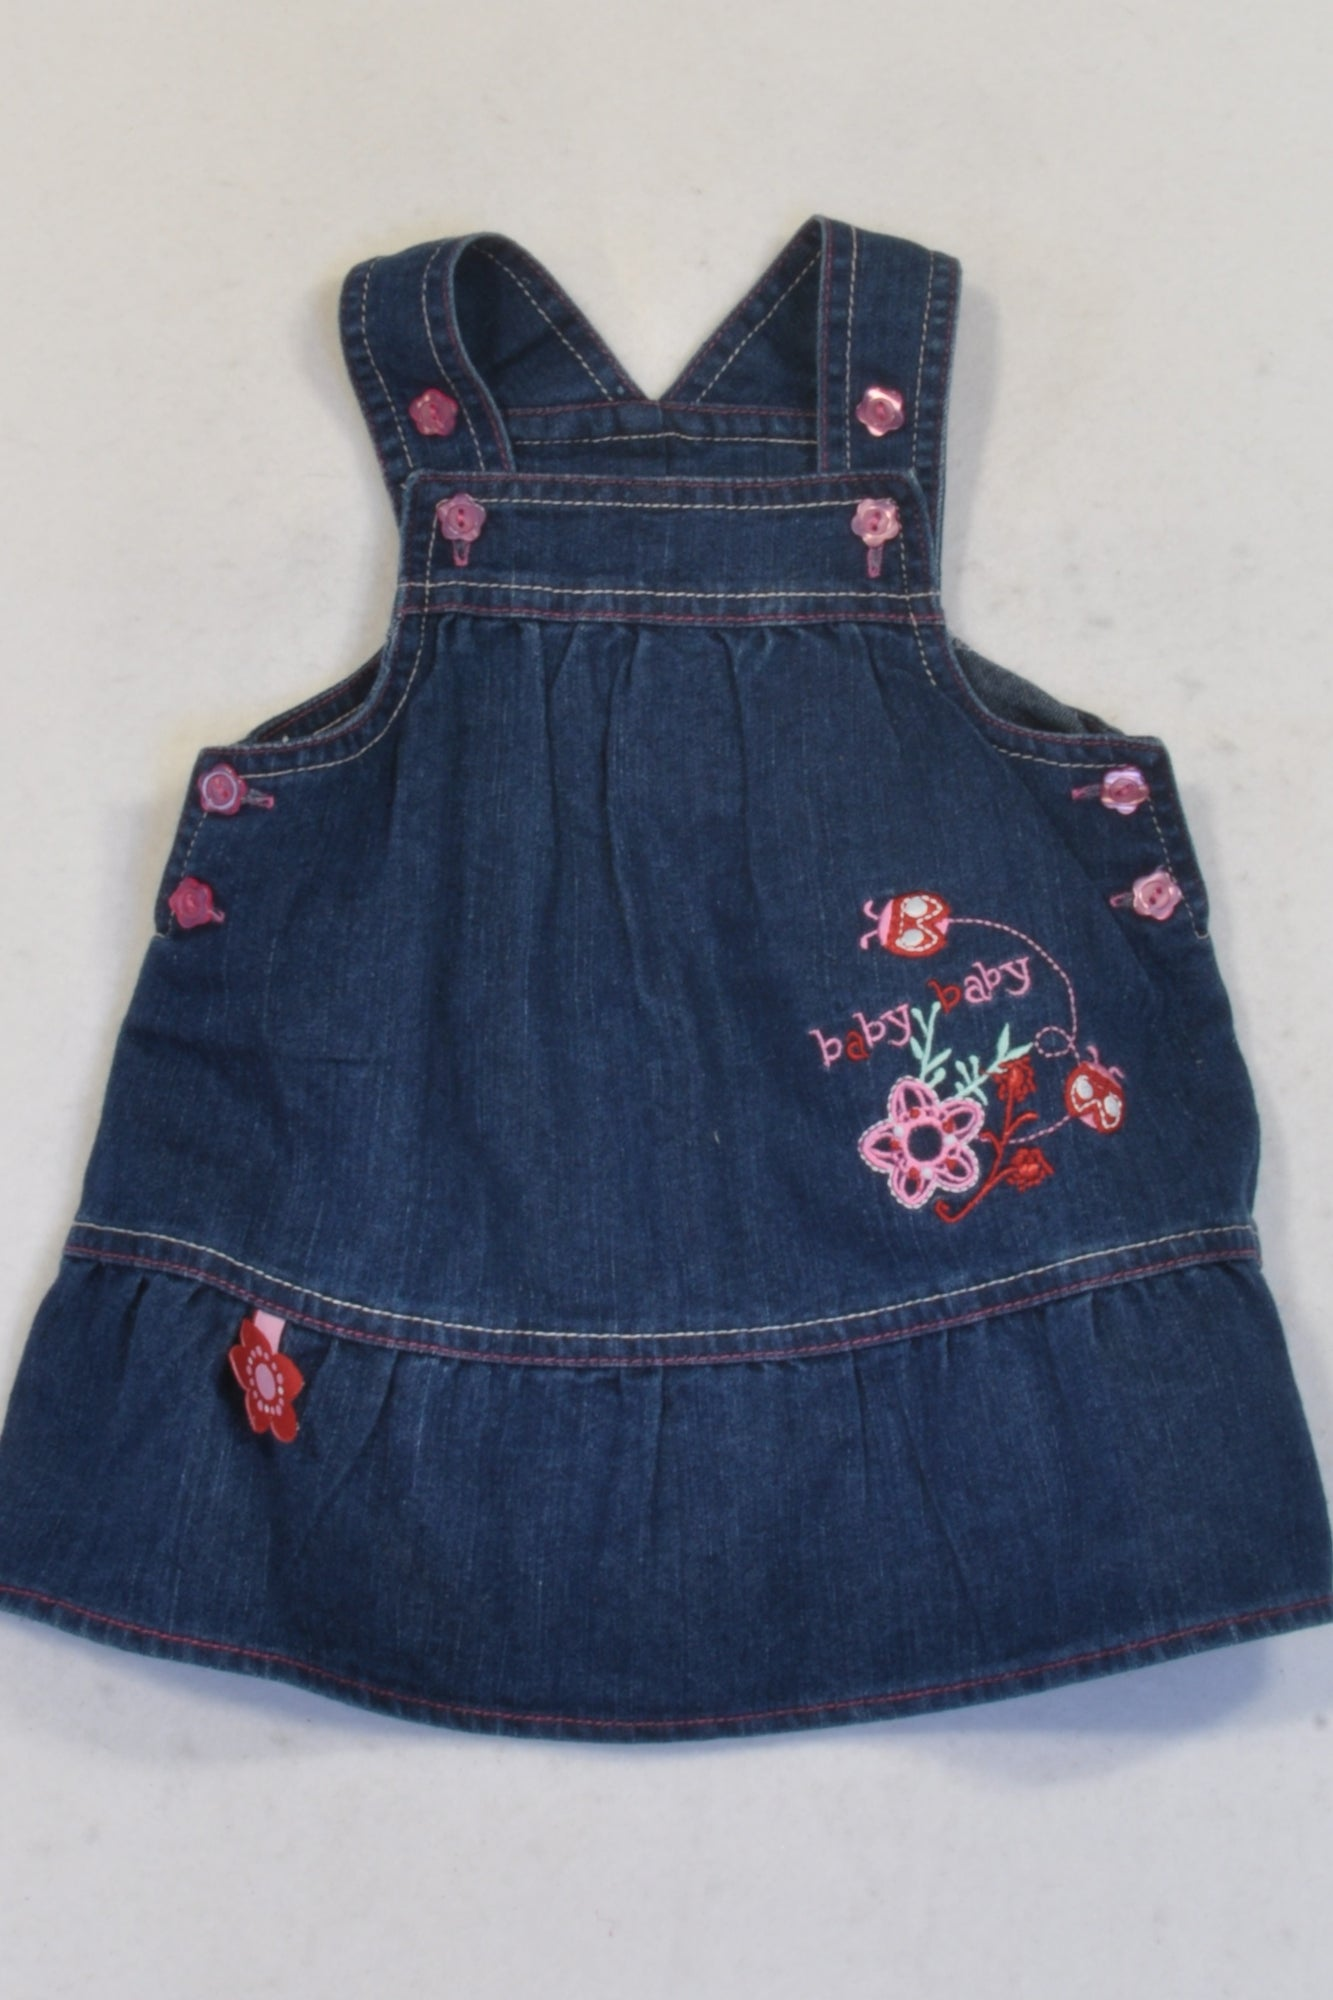 Ackermans  Pink Detail Ladybird Denim Dungaree  Dress Girls 0-3 months